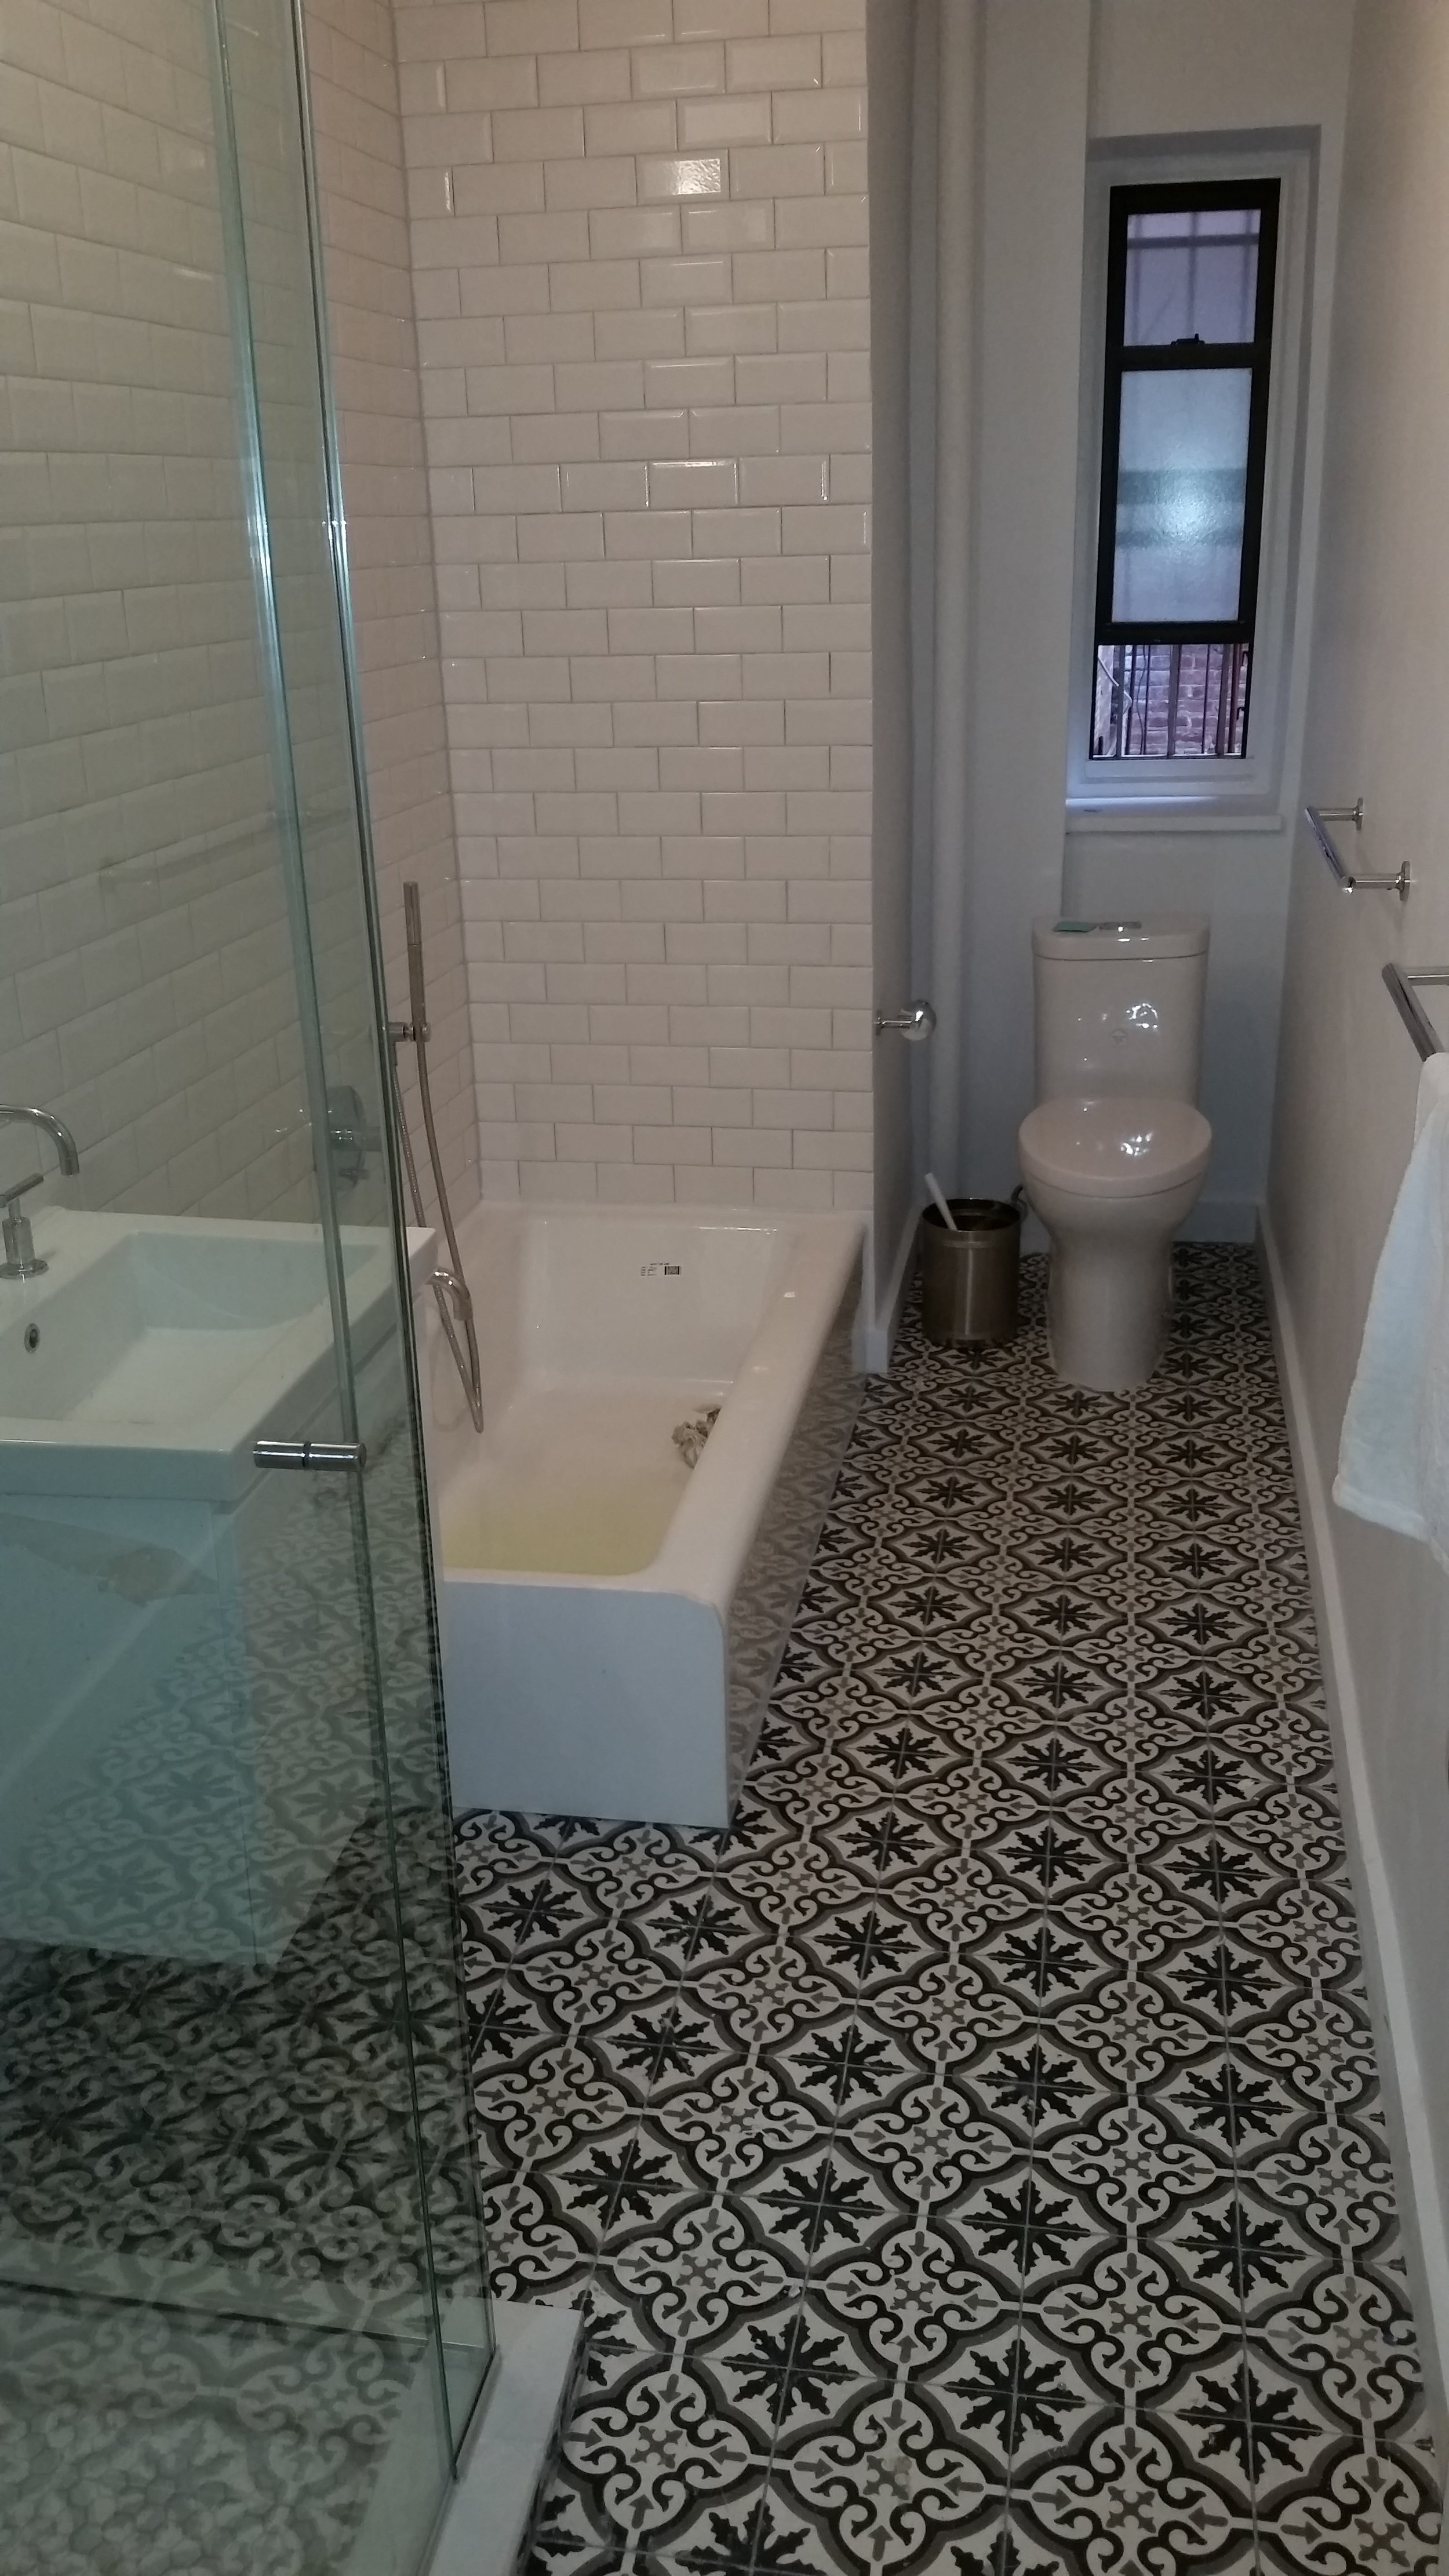 BROOKLYN BATHROOM    TYPE:  RESIDENTIAL INTERIOR RENOVATION   LOCATION:  PROSPECT HEIGHTS, BROOKLYN   SCOPE:  FULL GUT AND RENOVATION OF BATHROOM INCLUDING NEW FIXTURES, PLUMBING, LIGHTING, AND TILE WORK.